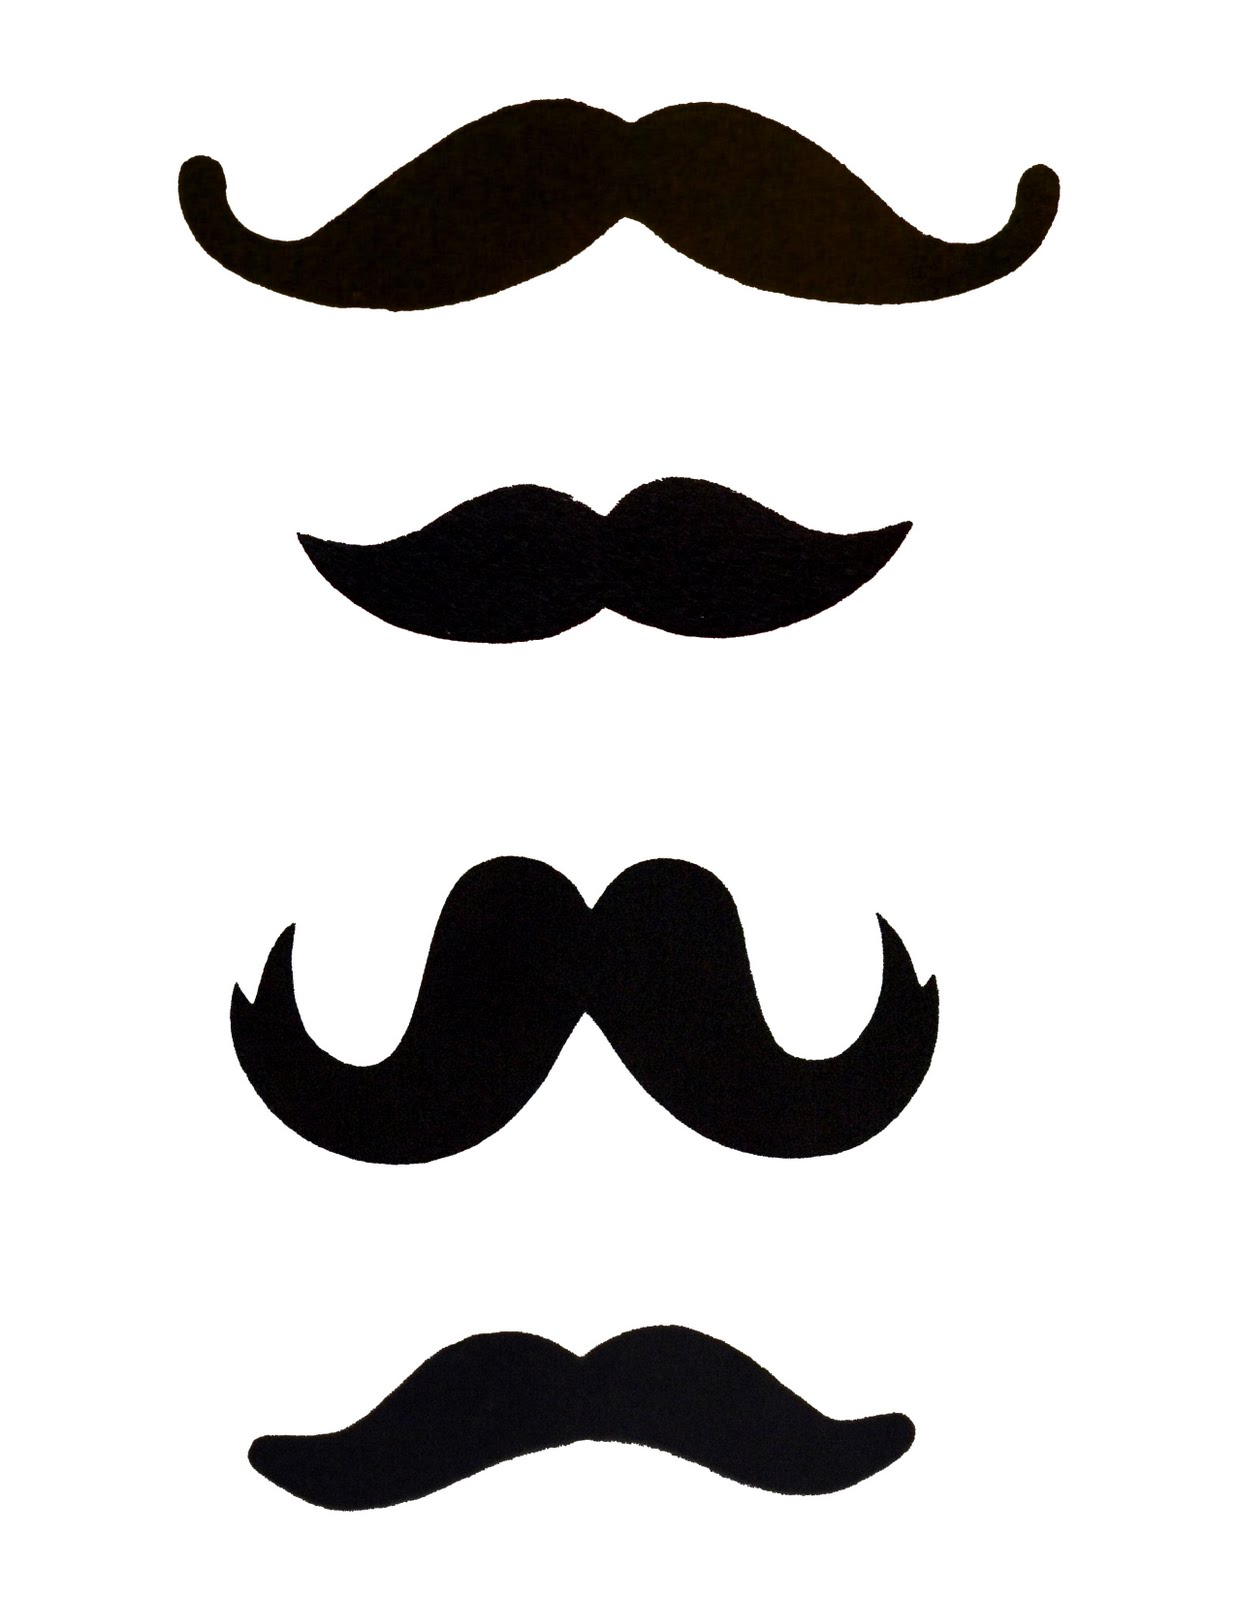 Unforgettable image intended for mustache template printable